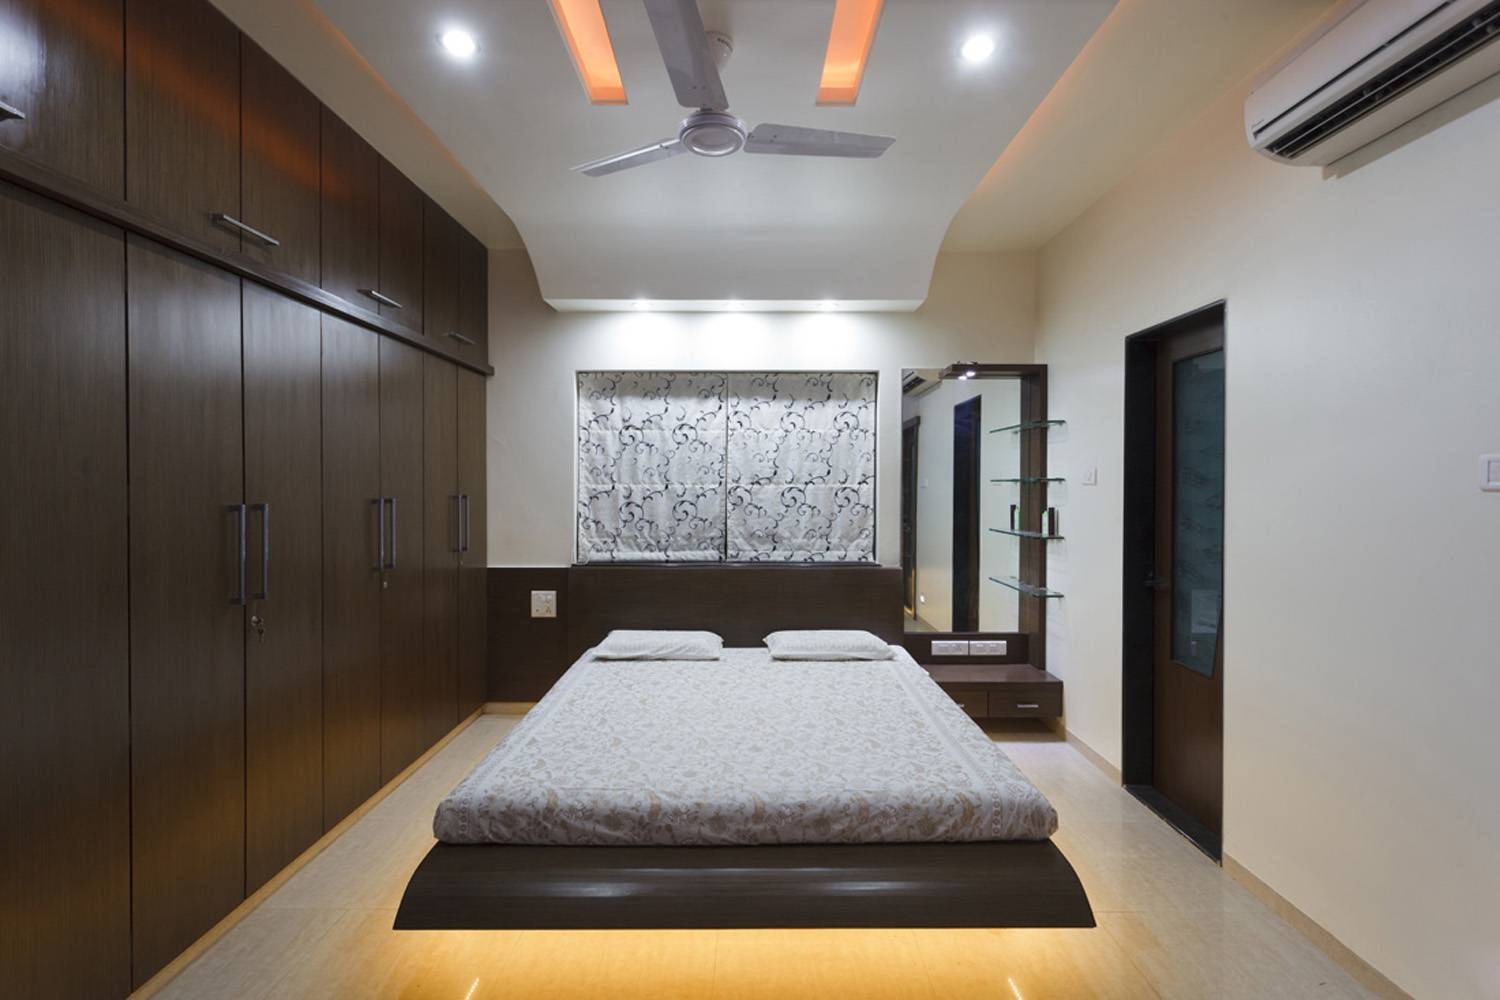 Bed room interior design portfolio leading interior designer pune - Bedrooms interior design ...